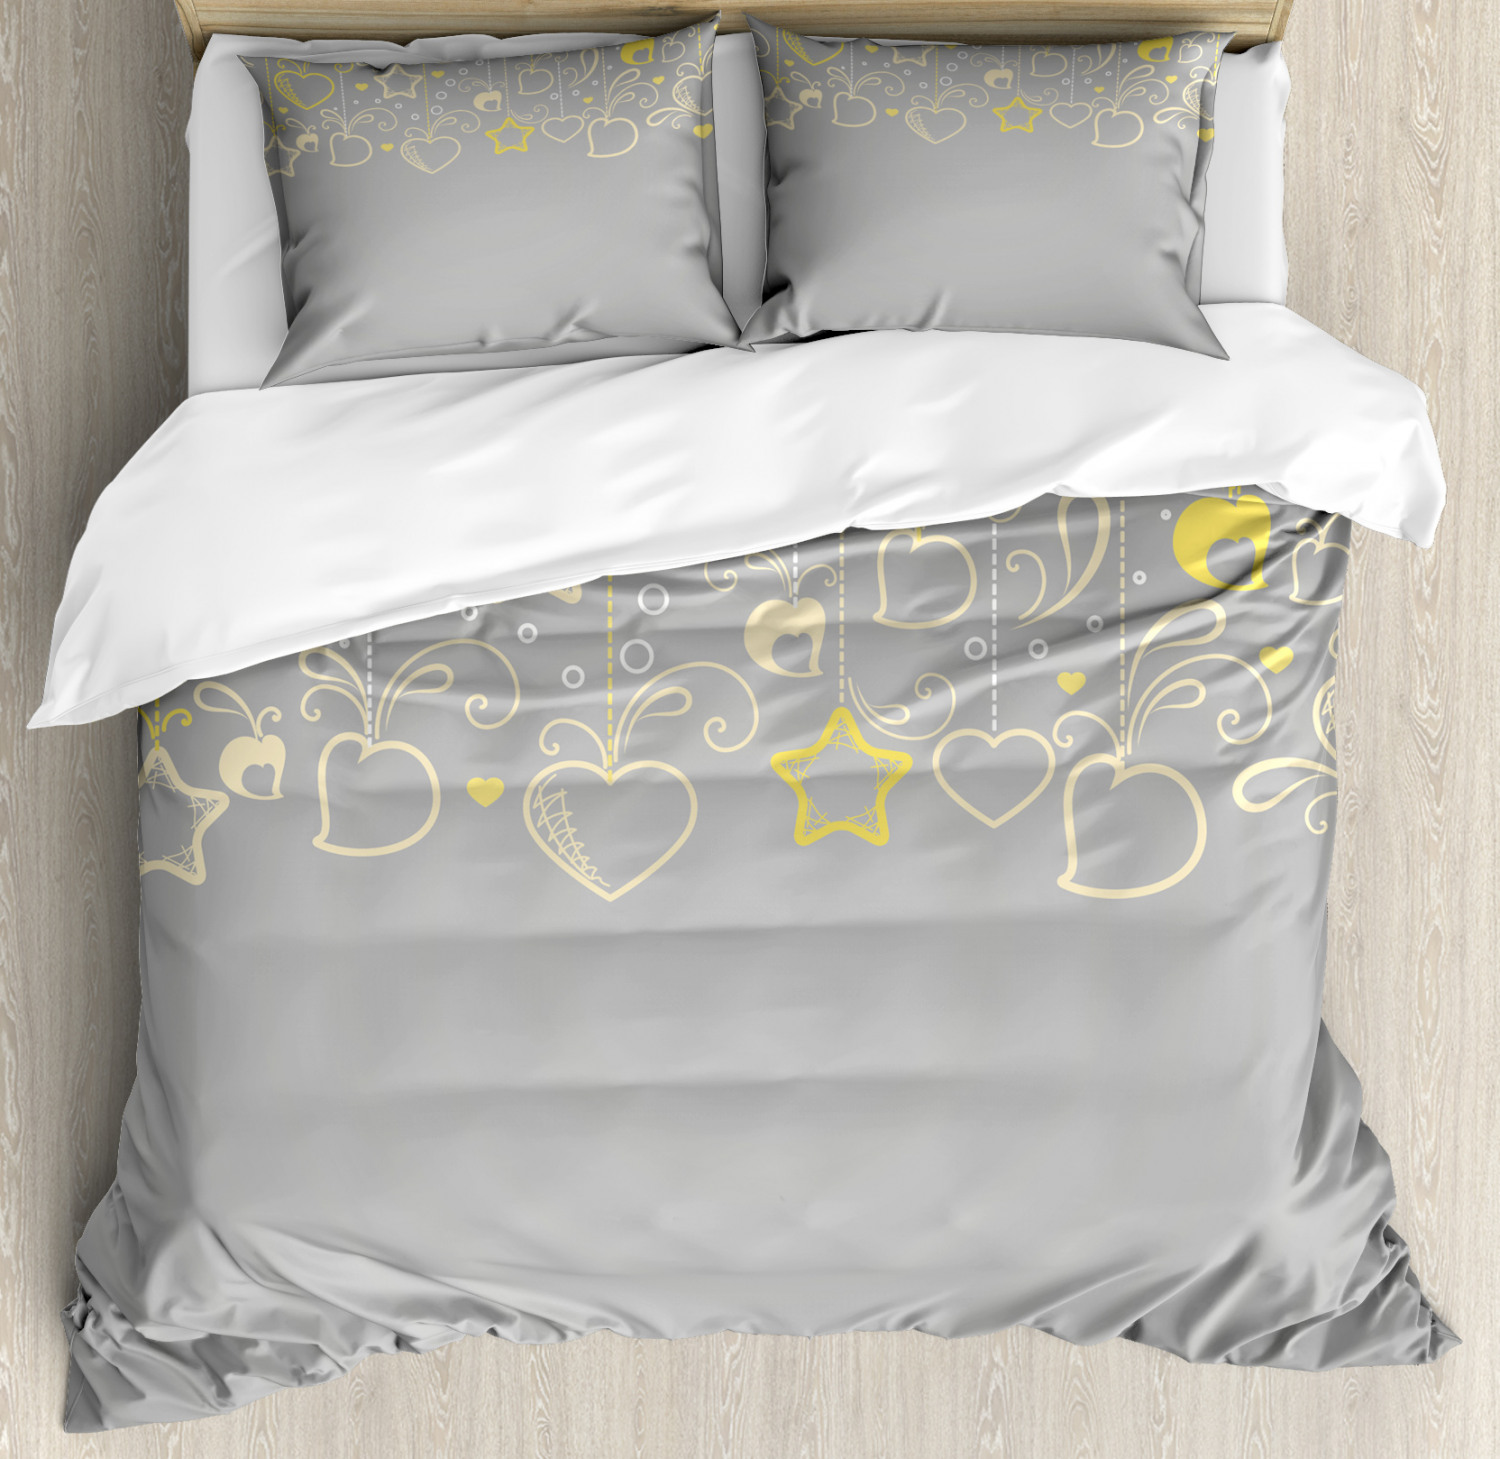 Ethnic Duvet Cover Set with Pillow Shams Grey Swirl Hearts Print